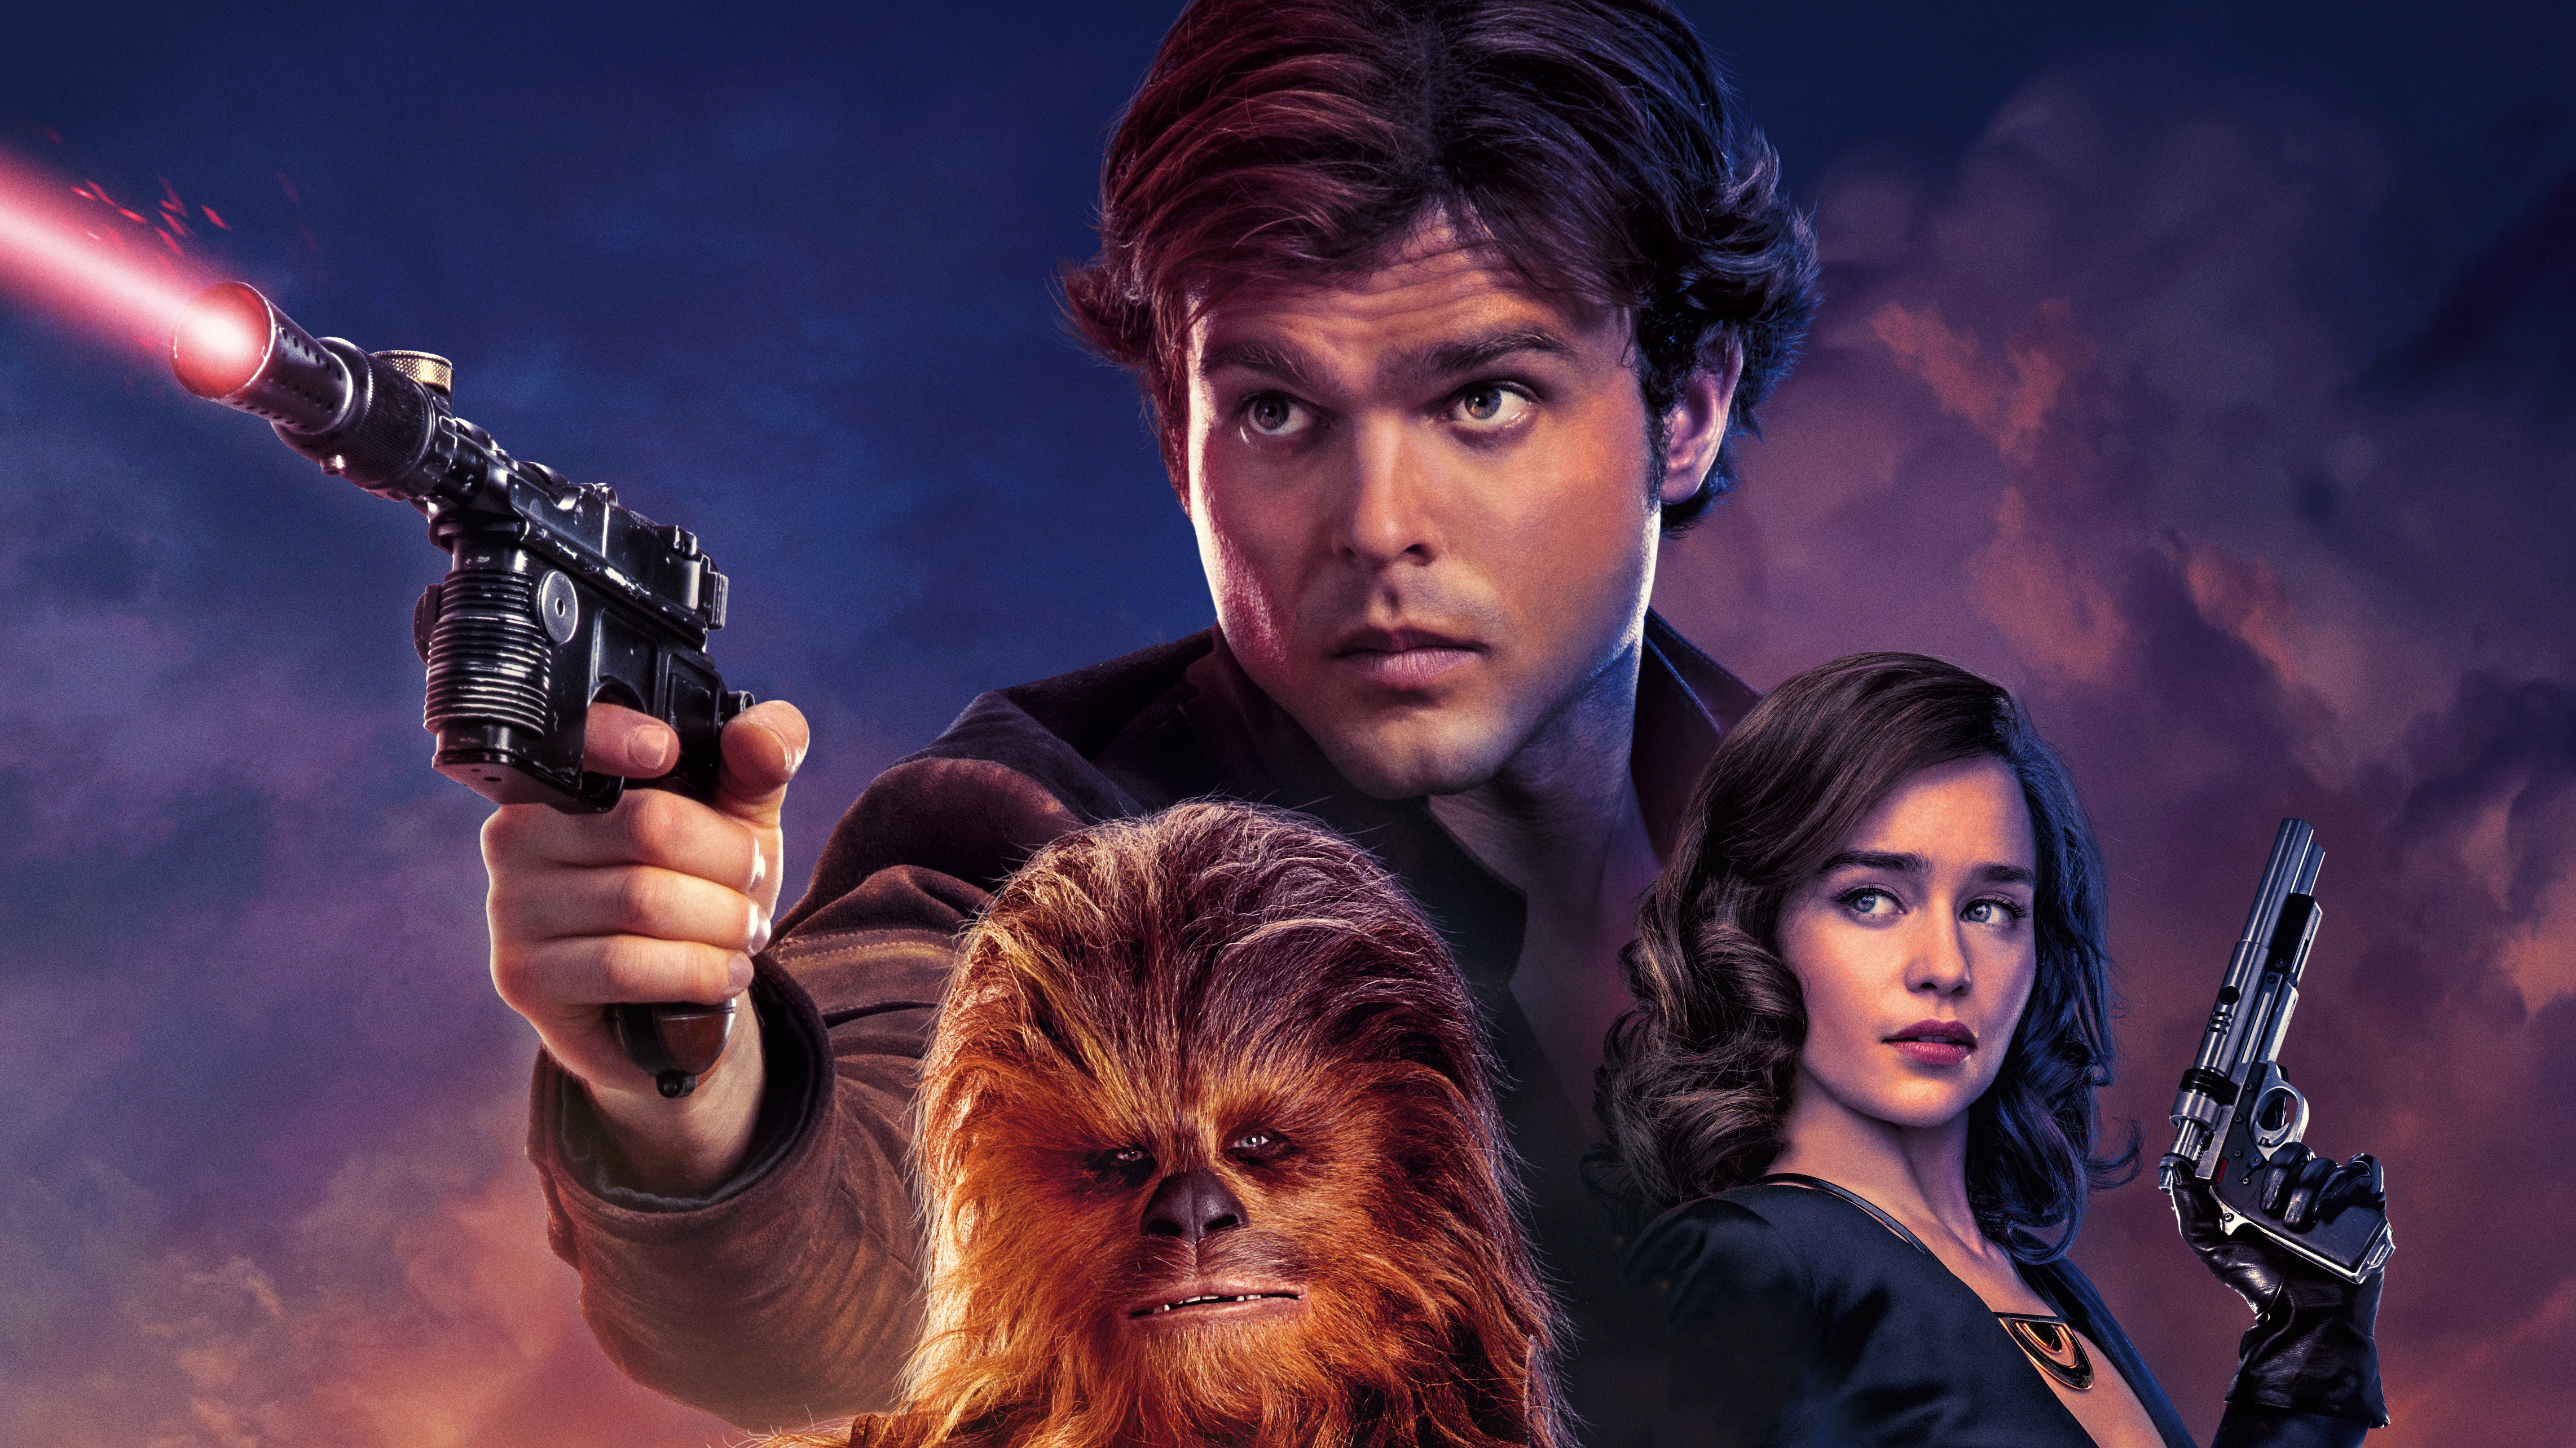 Solo A Star Wars Story 4k, HD Movies, 4k Wallpapers, Images